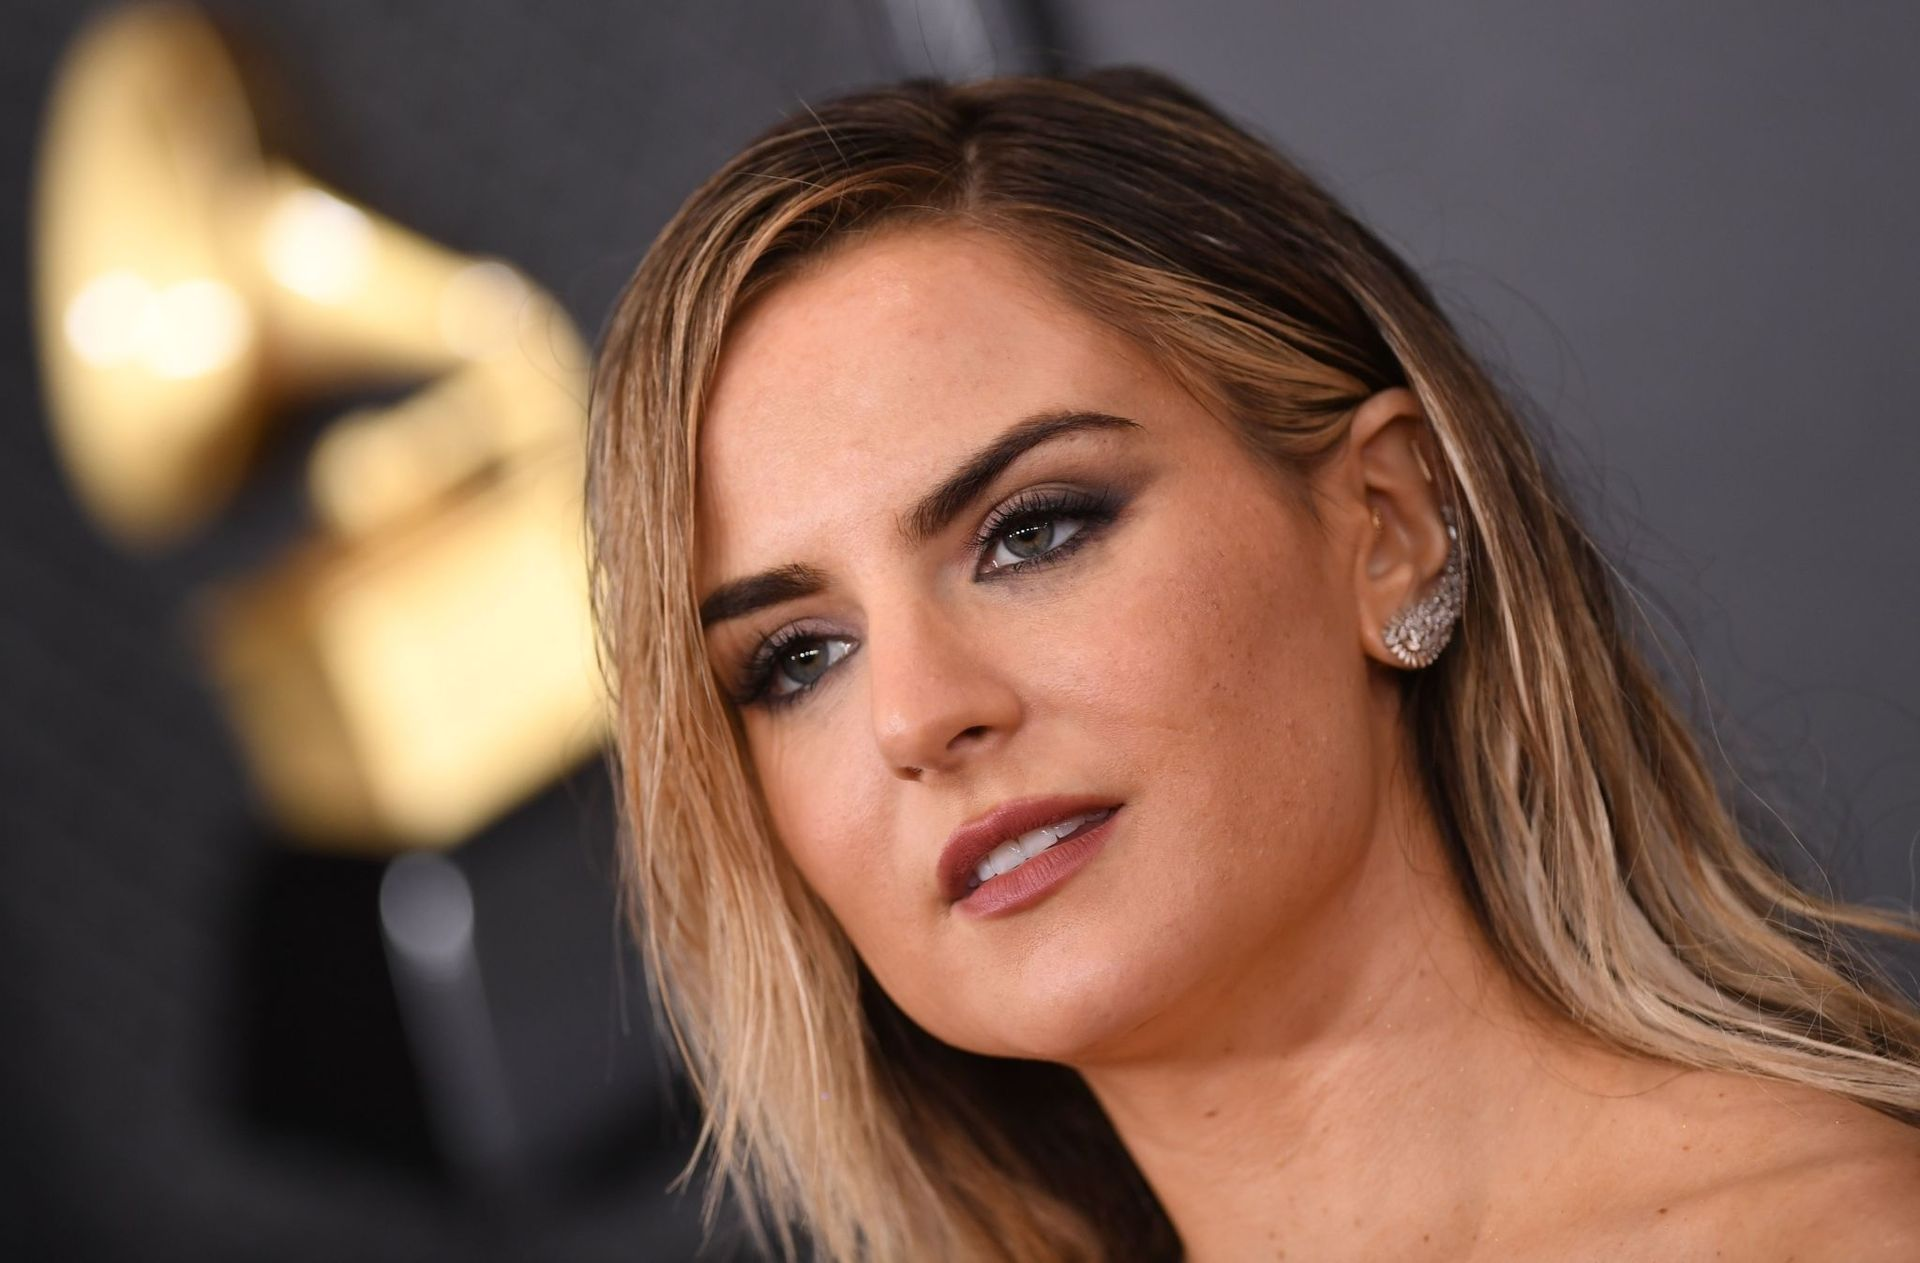 Jojo Shows Her Legs And Cleavage At The 62nd Annual Grammy Awards 0041